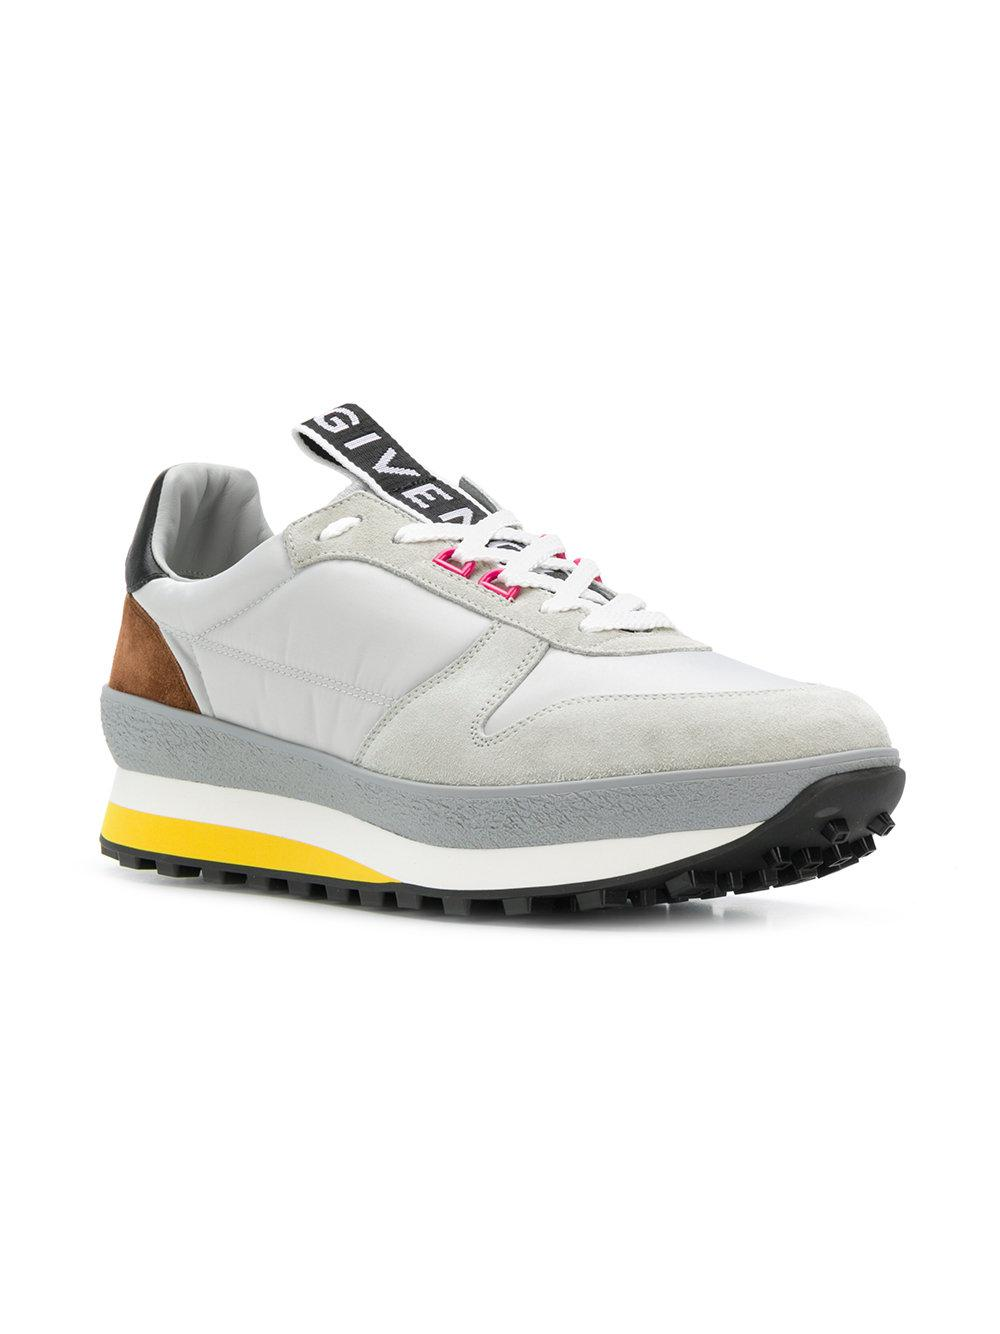 Tr3 Gray Runner In Givenchy Sneakers 84 Save For Lyst Men vCx5Onw